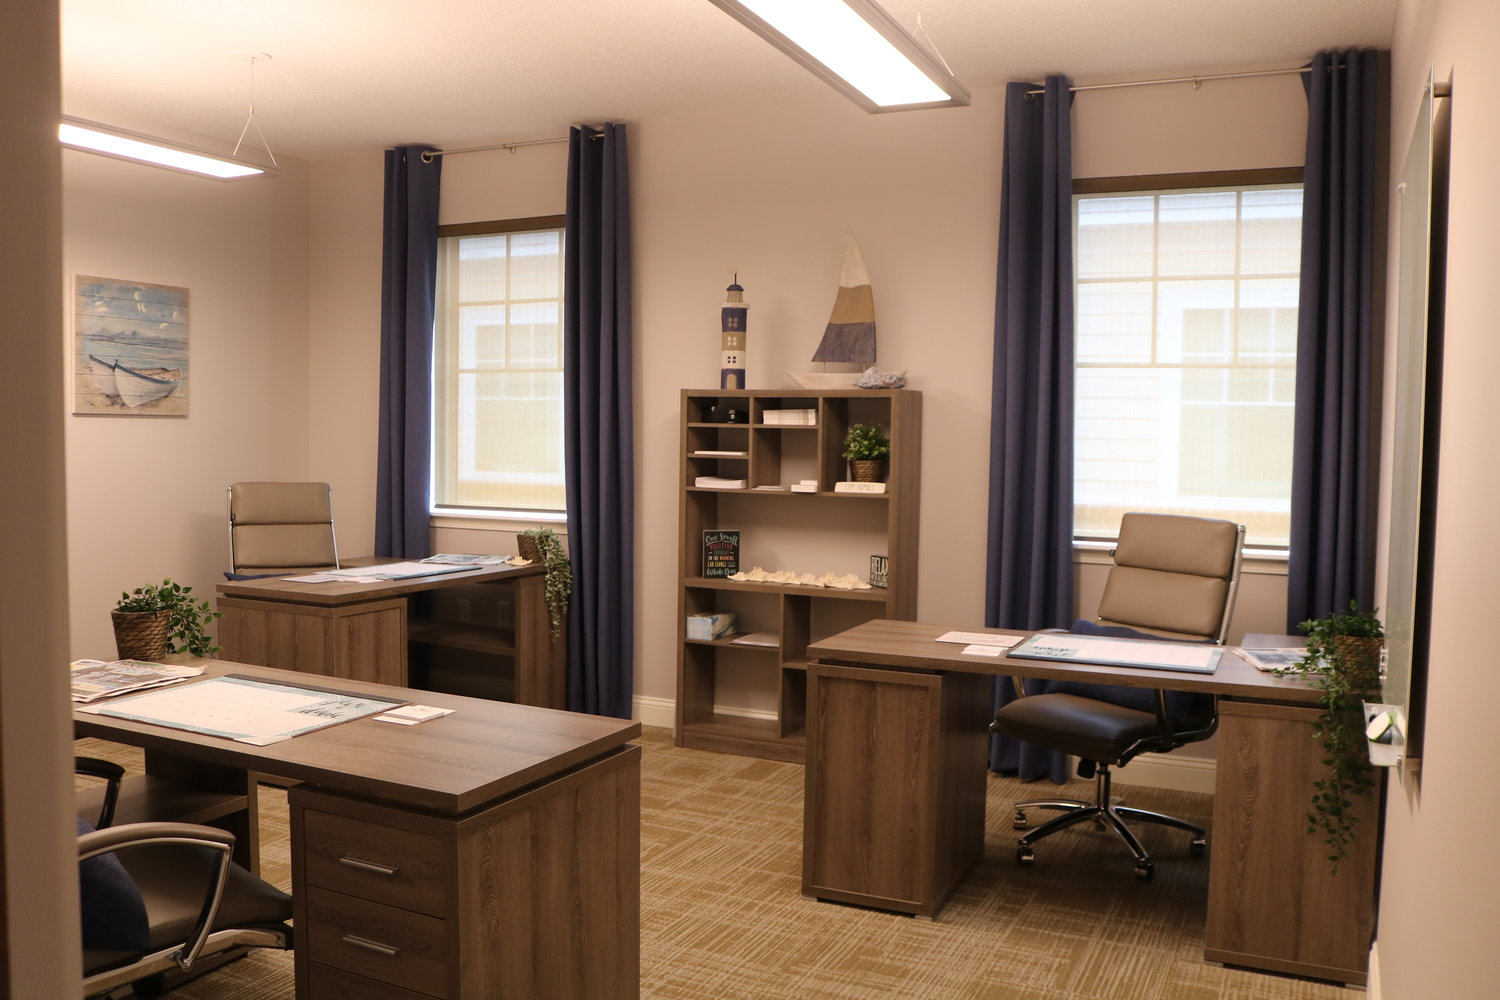 A look inside the business offices of Driftwood Realty Group.